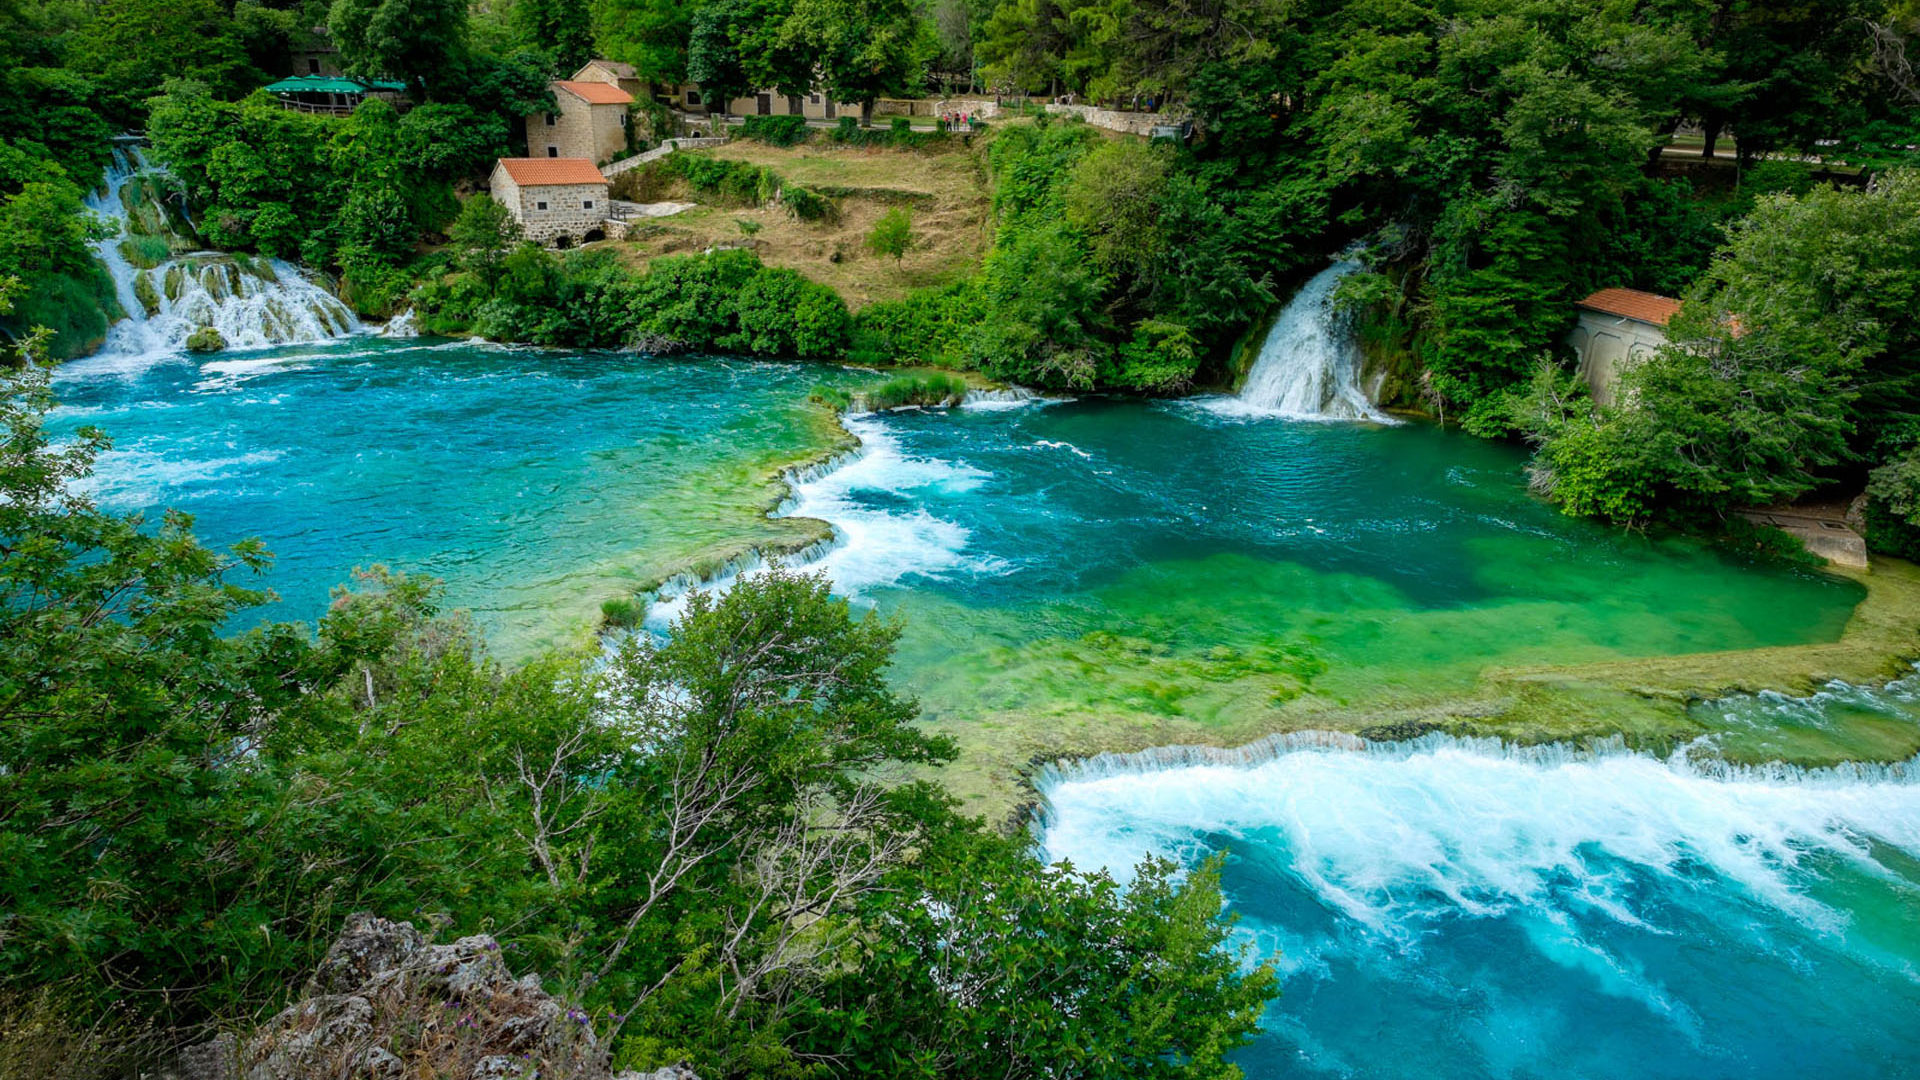 Cool Wallpapers Water Fall Plitvice Lakes Waterfalls On The River Krka National Park